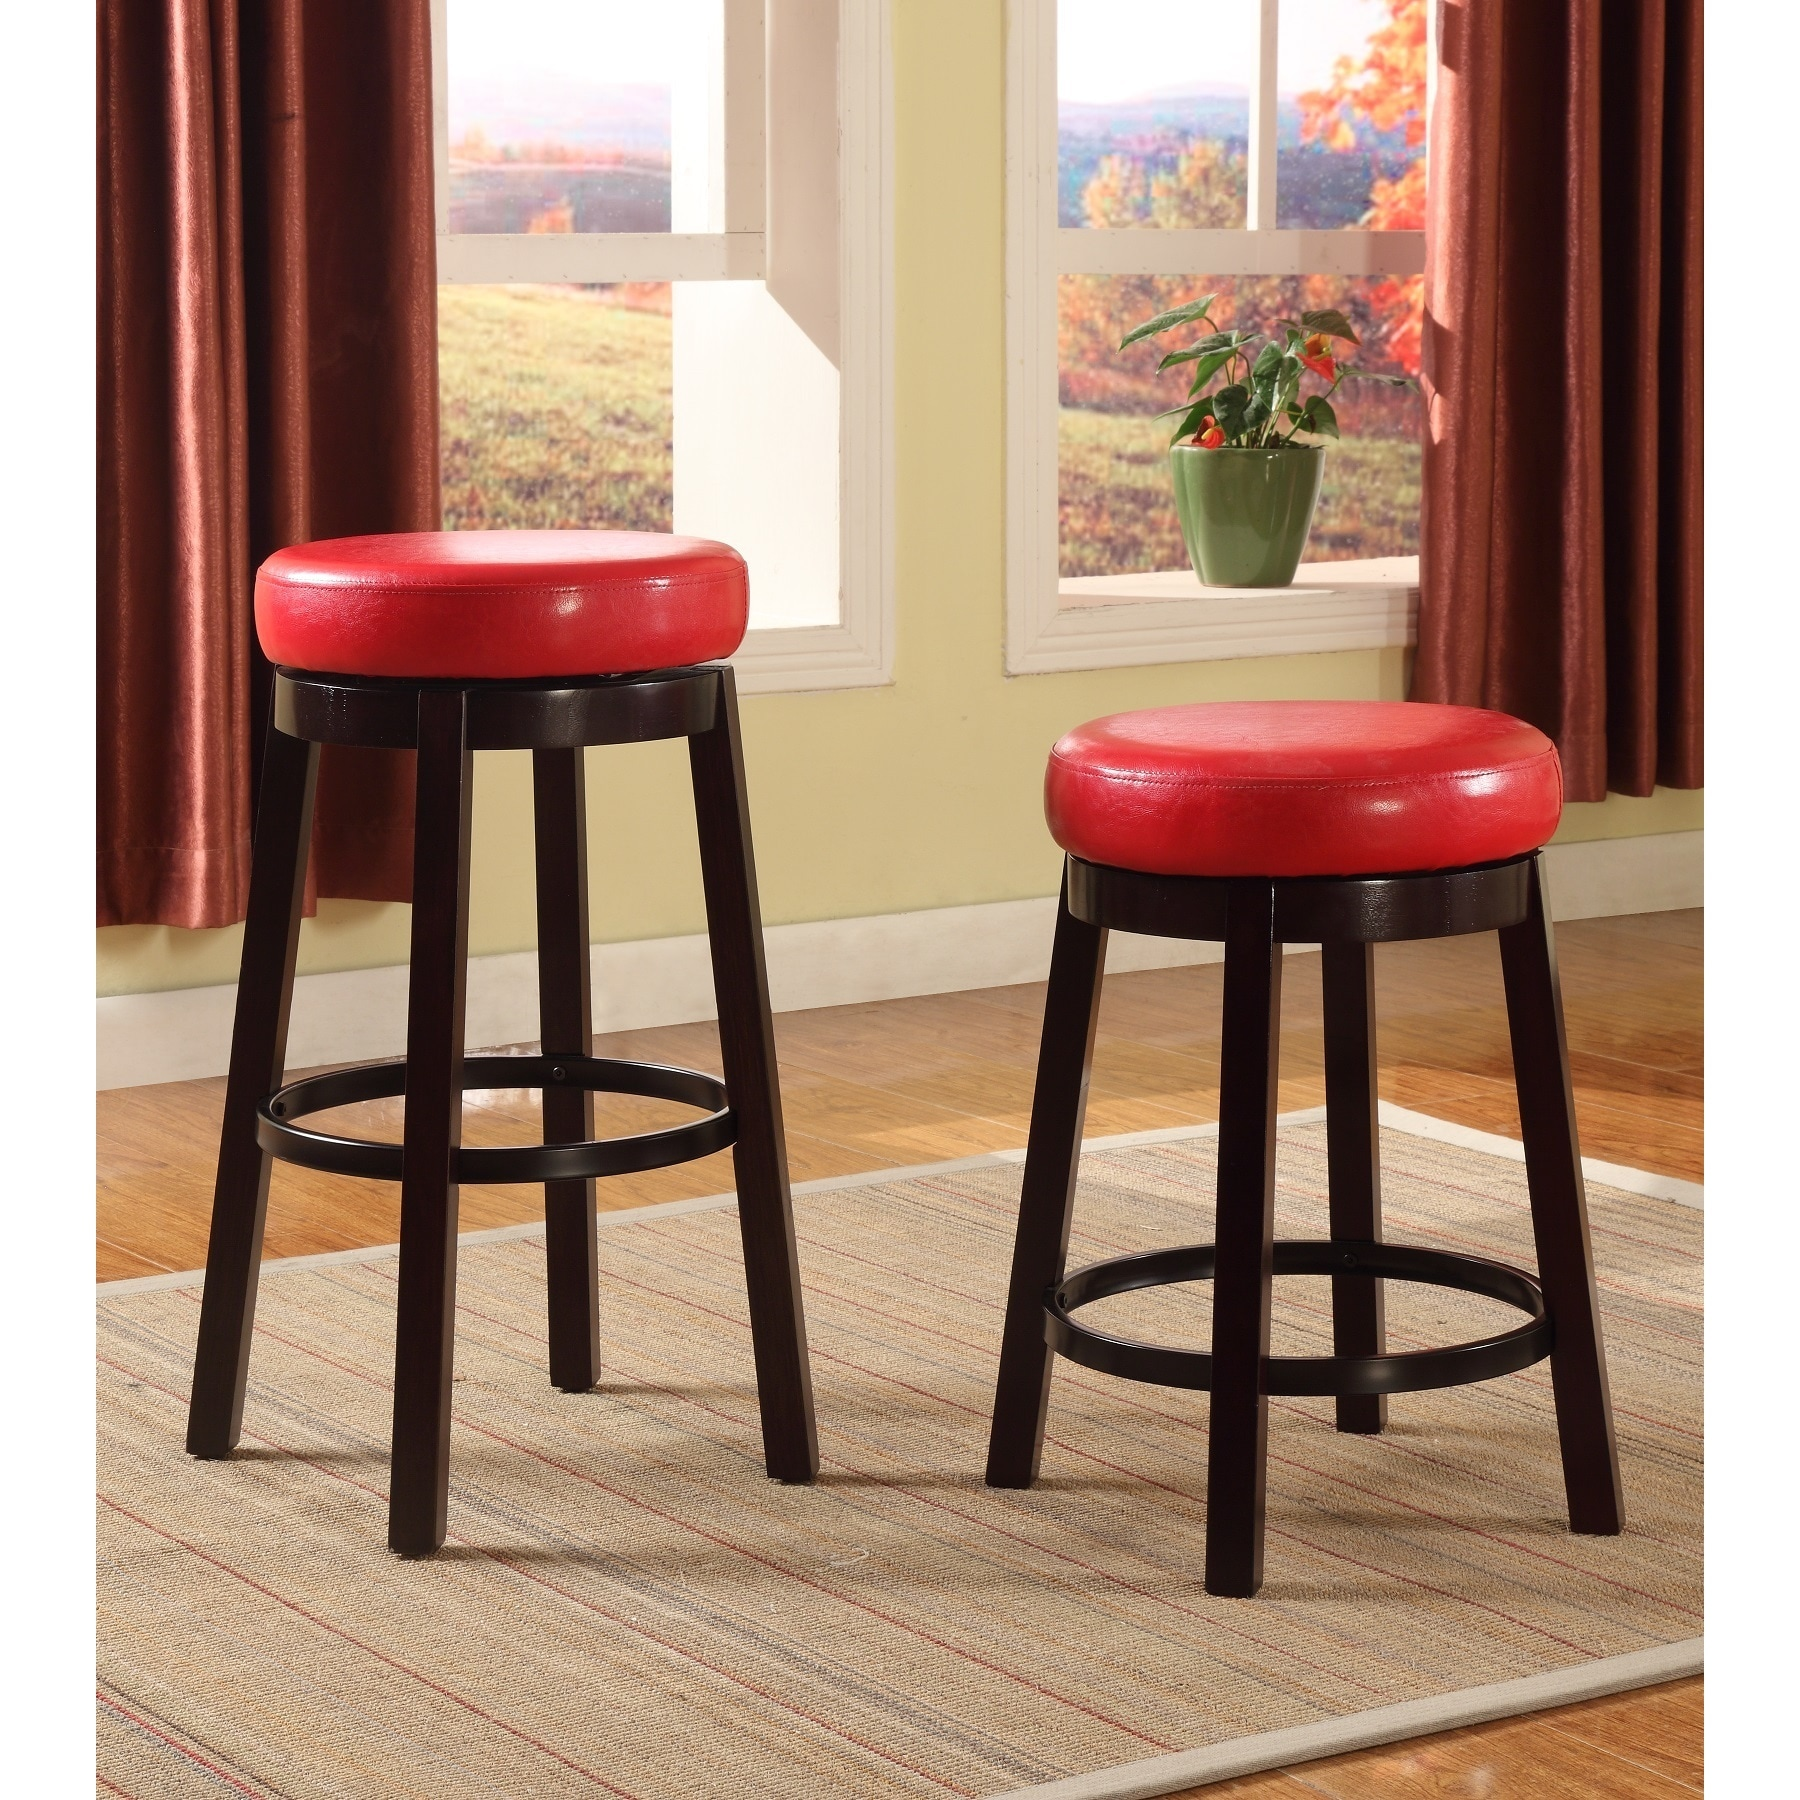 swivel counter height bar stool with leather seat and metal foot rest set of 2 ebay. Black Bedroom Furniture Sets. Home Design Ideas